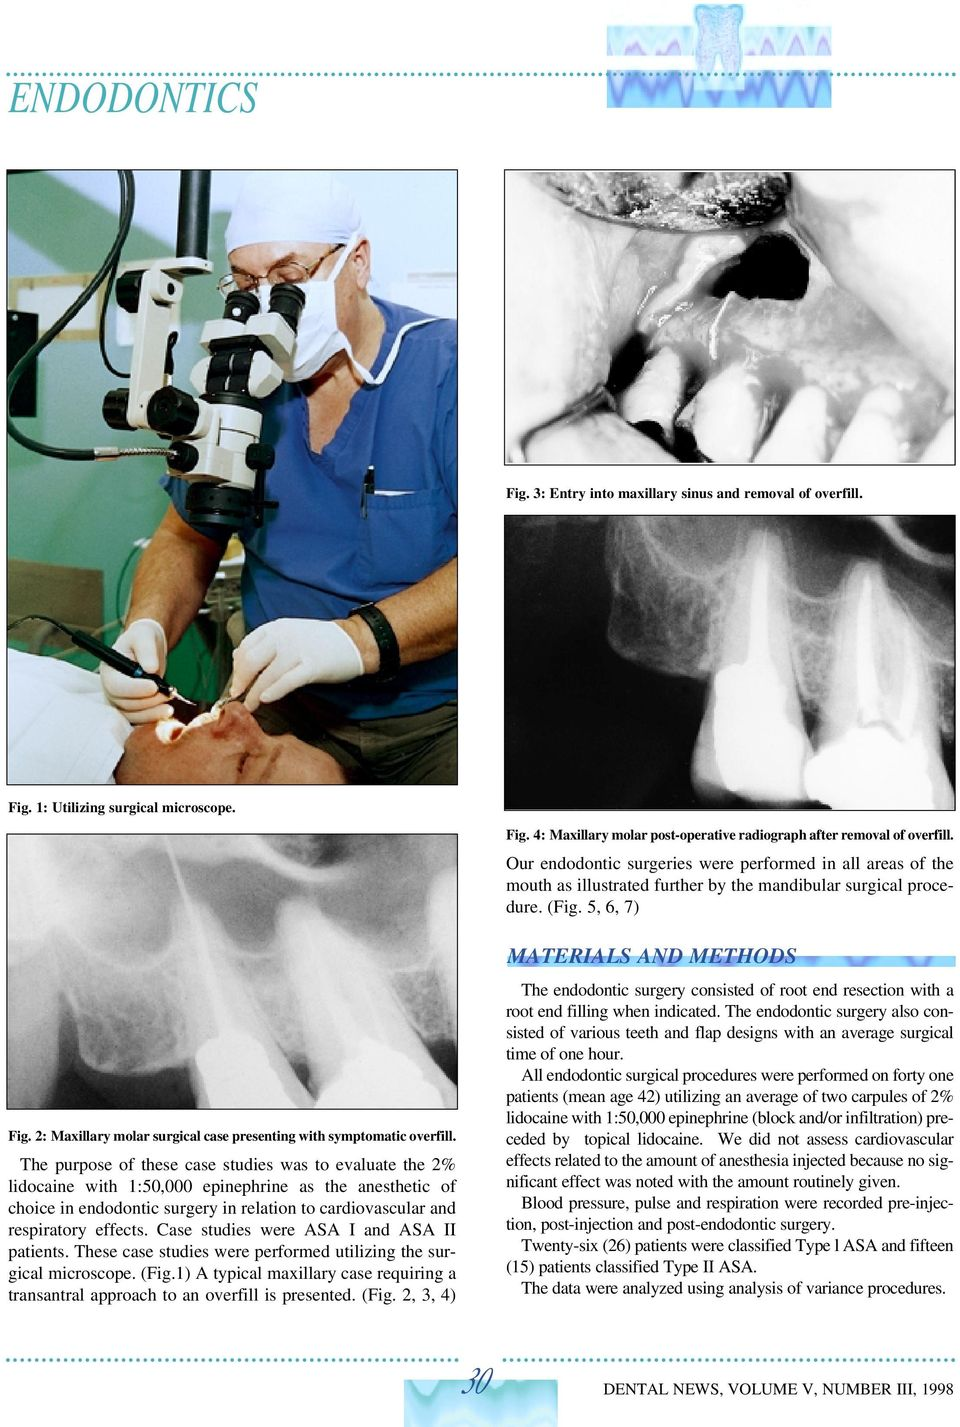 2: Maxillary molar surgical case presenting with symptomatic overfill.